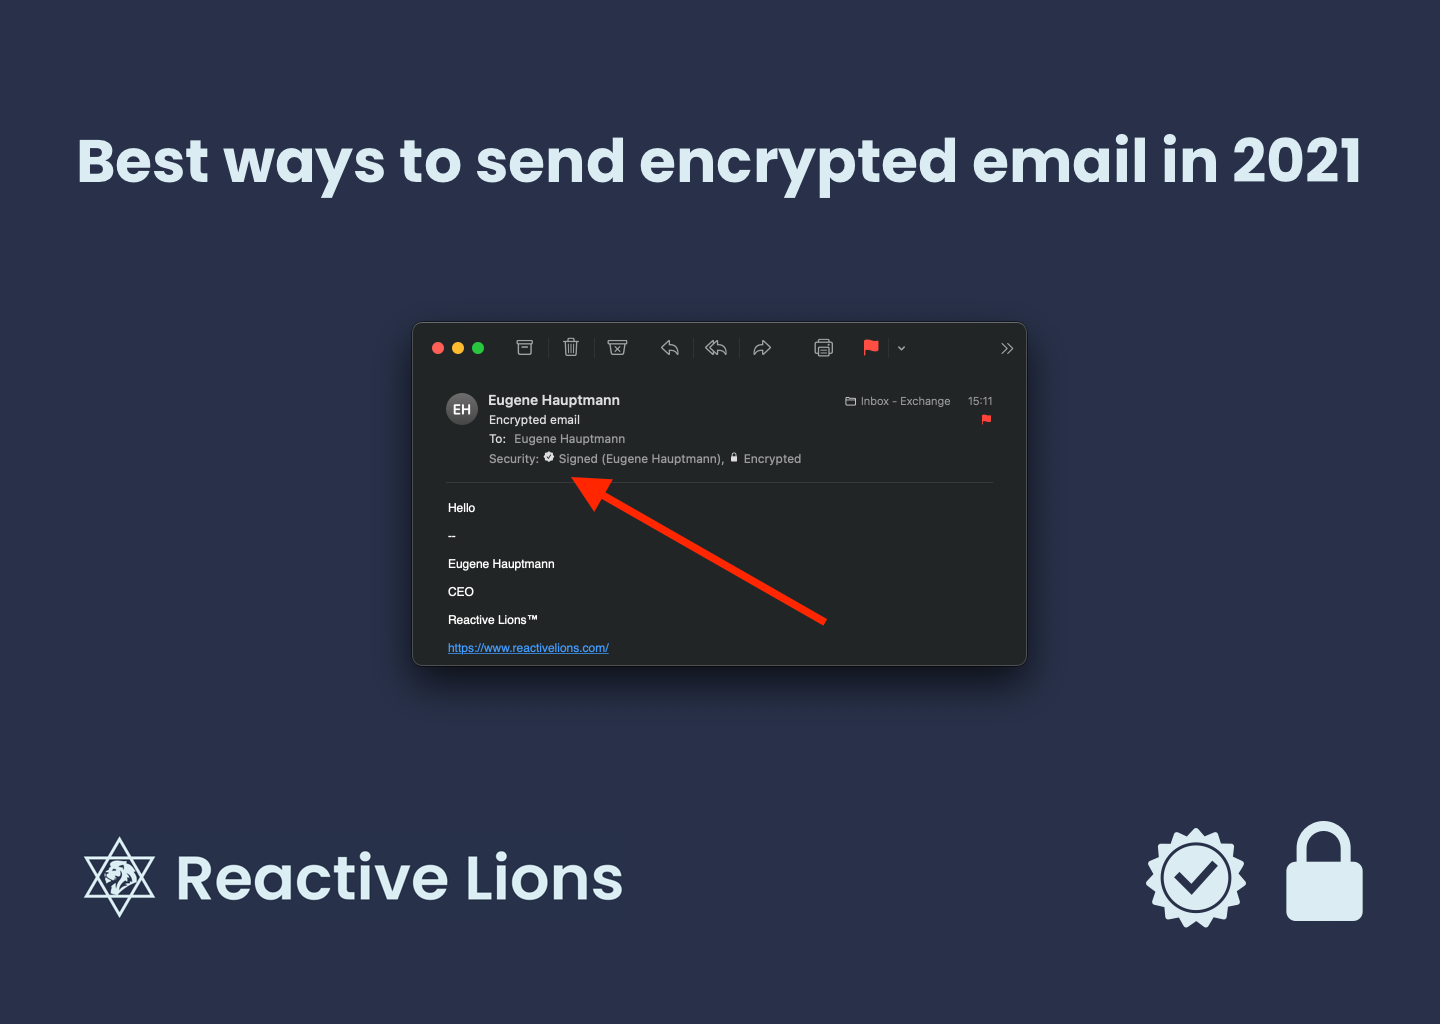 Best ways to send encrypted email in 2021